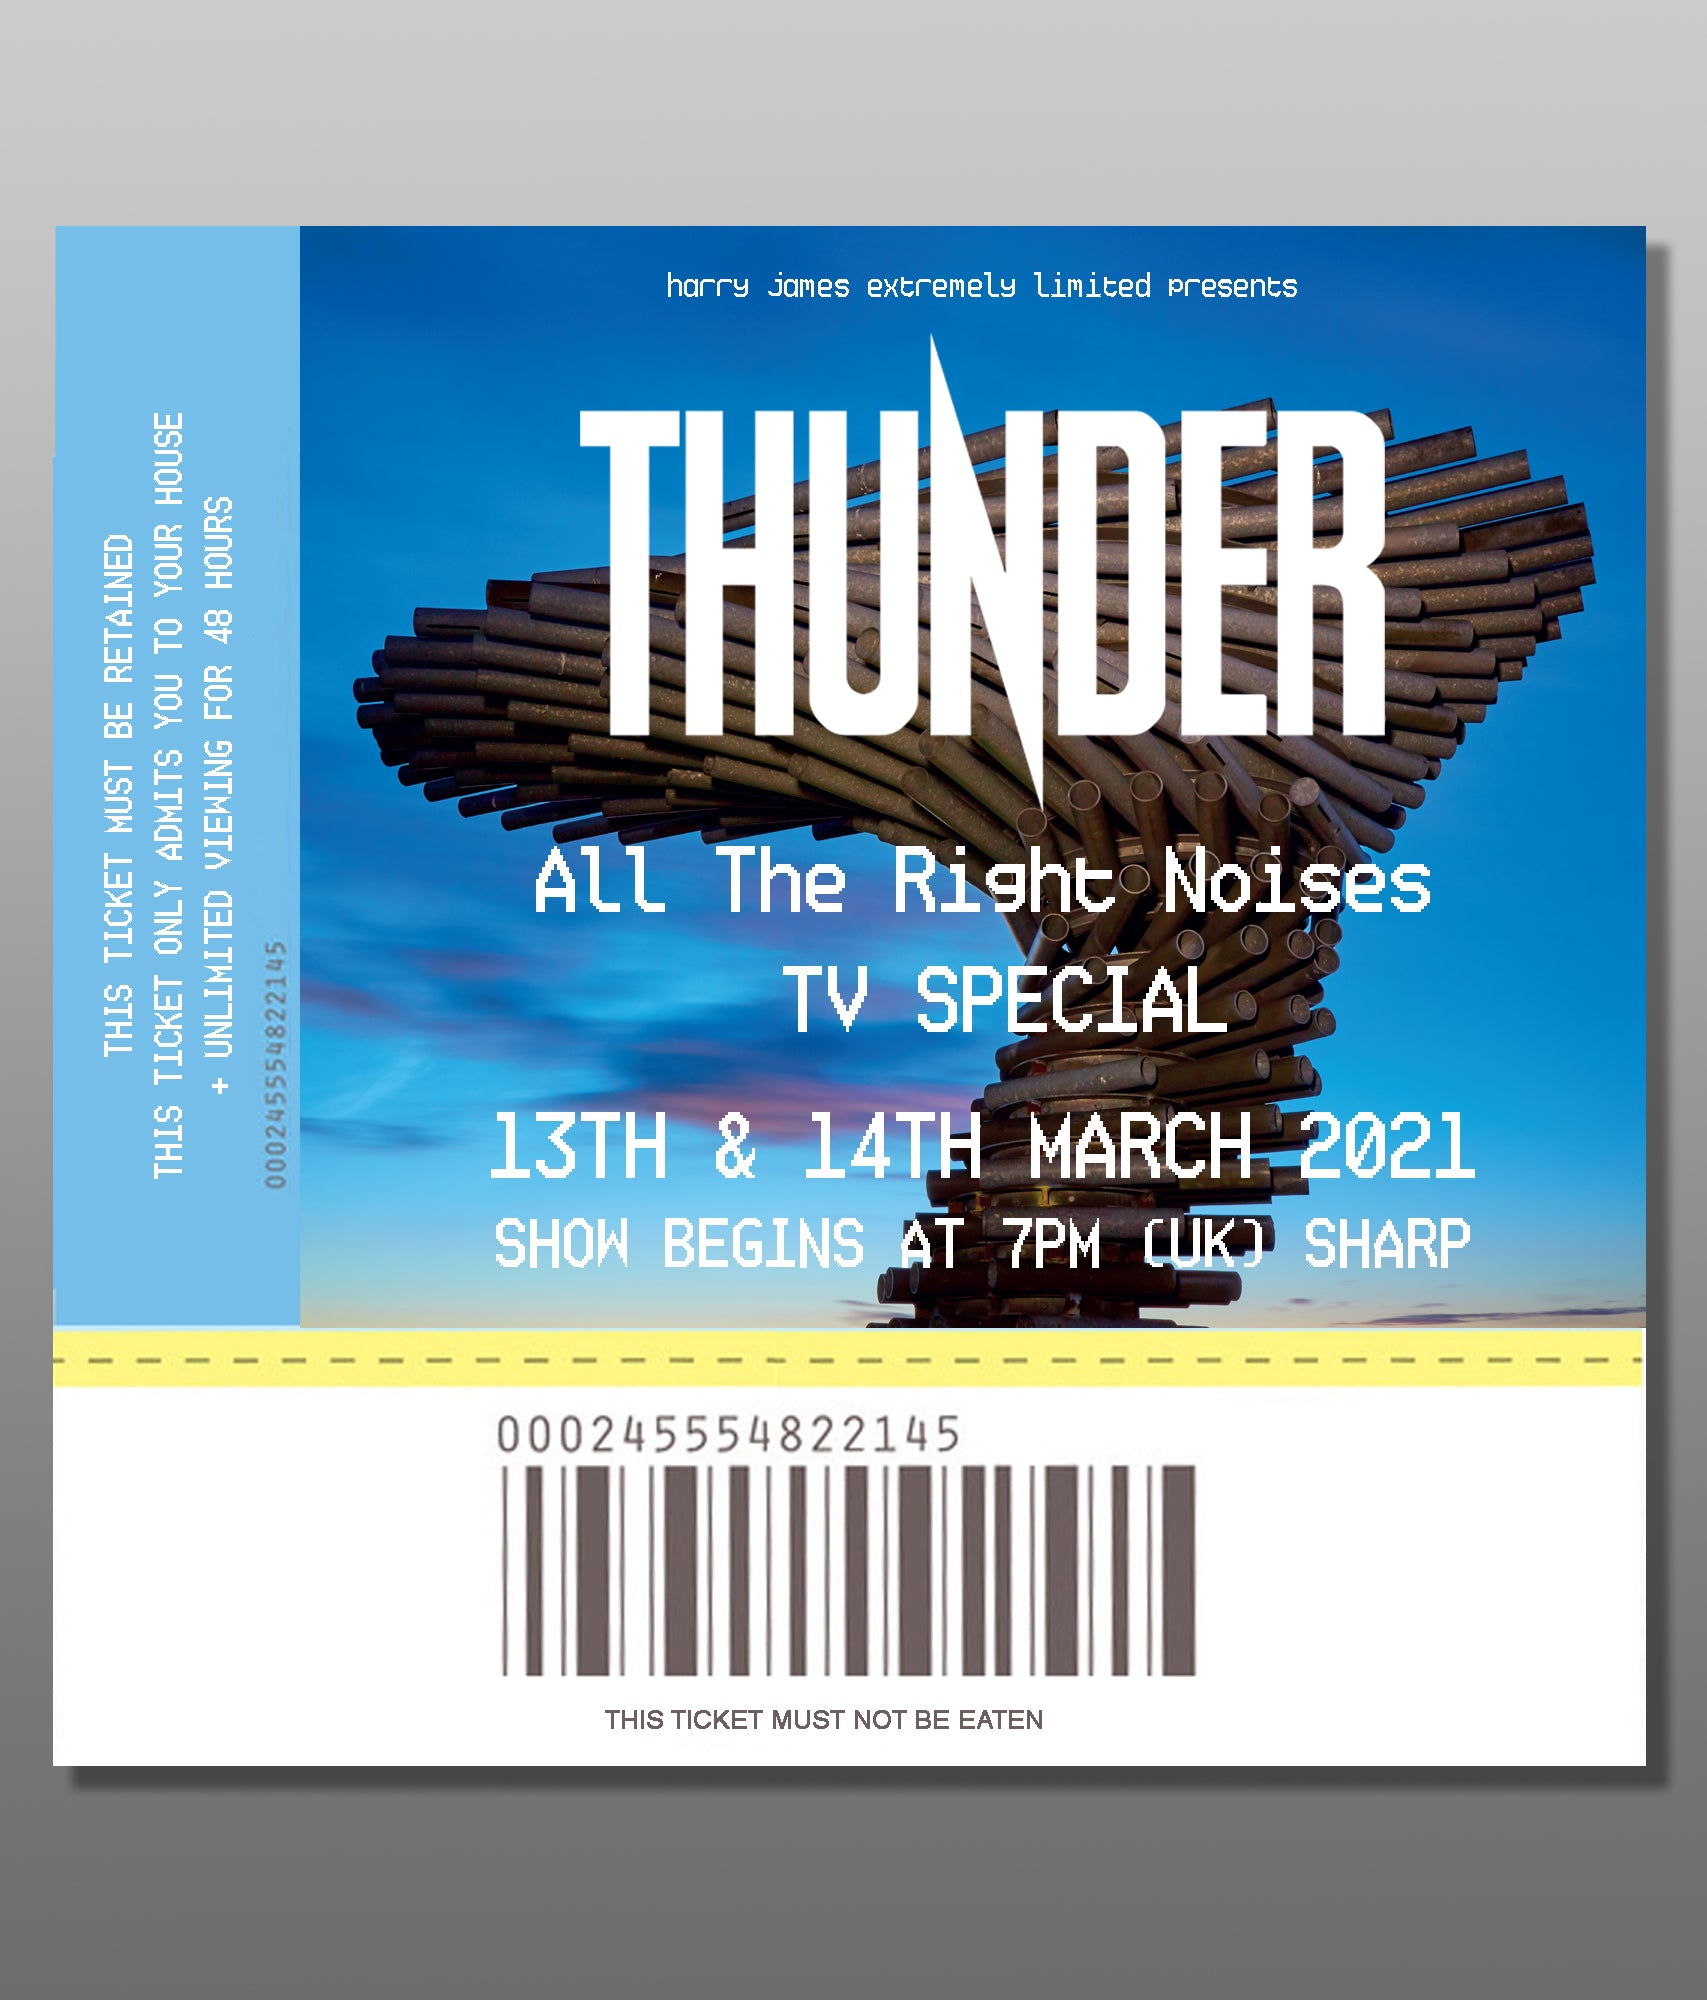 "All The Right Noises ""TV Special"" - Ticket"